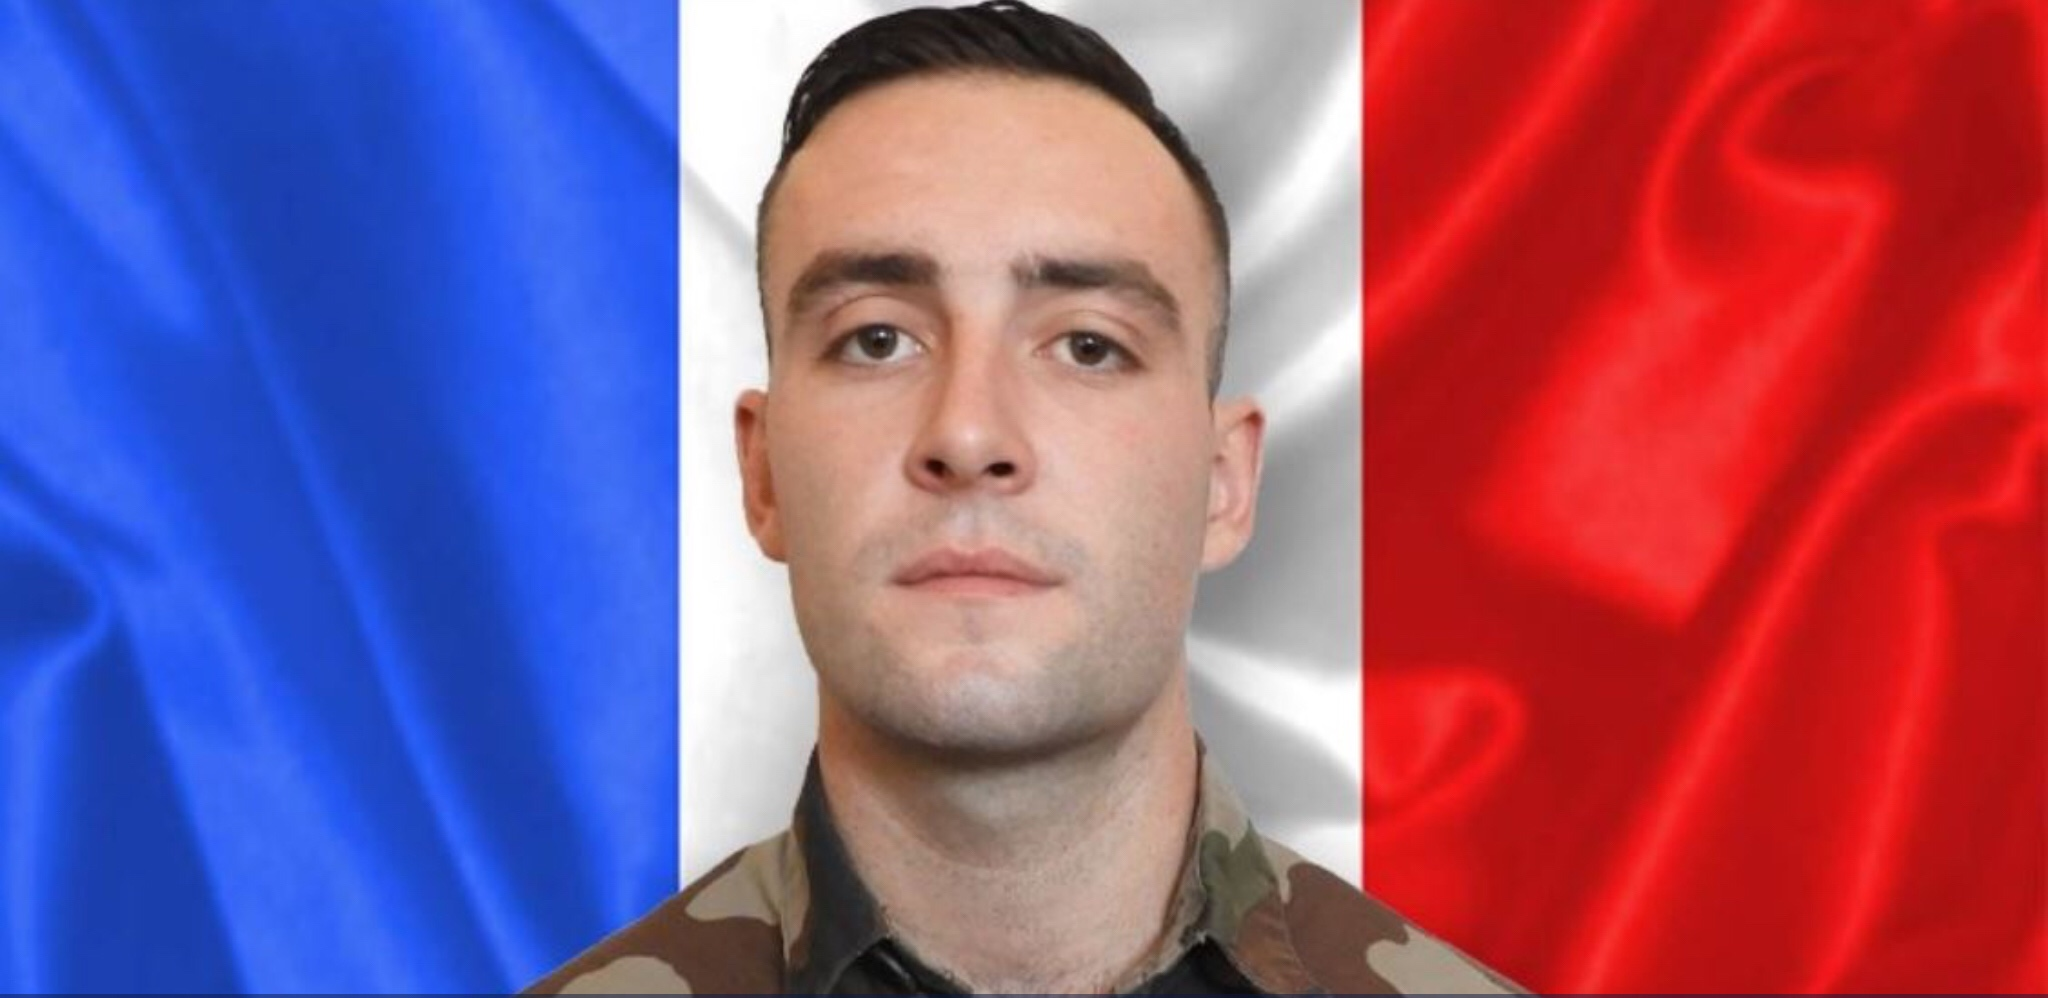 French solider killed in Mali